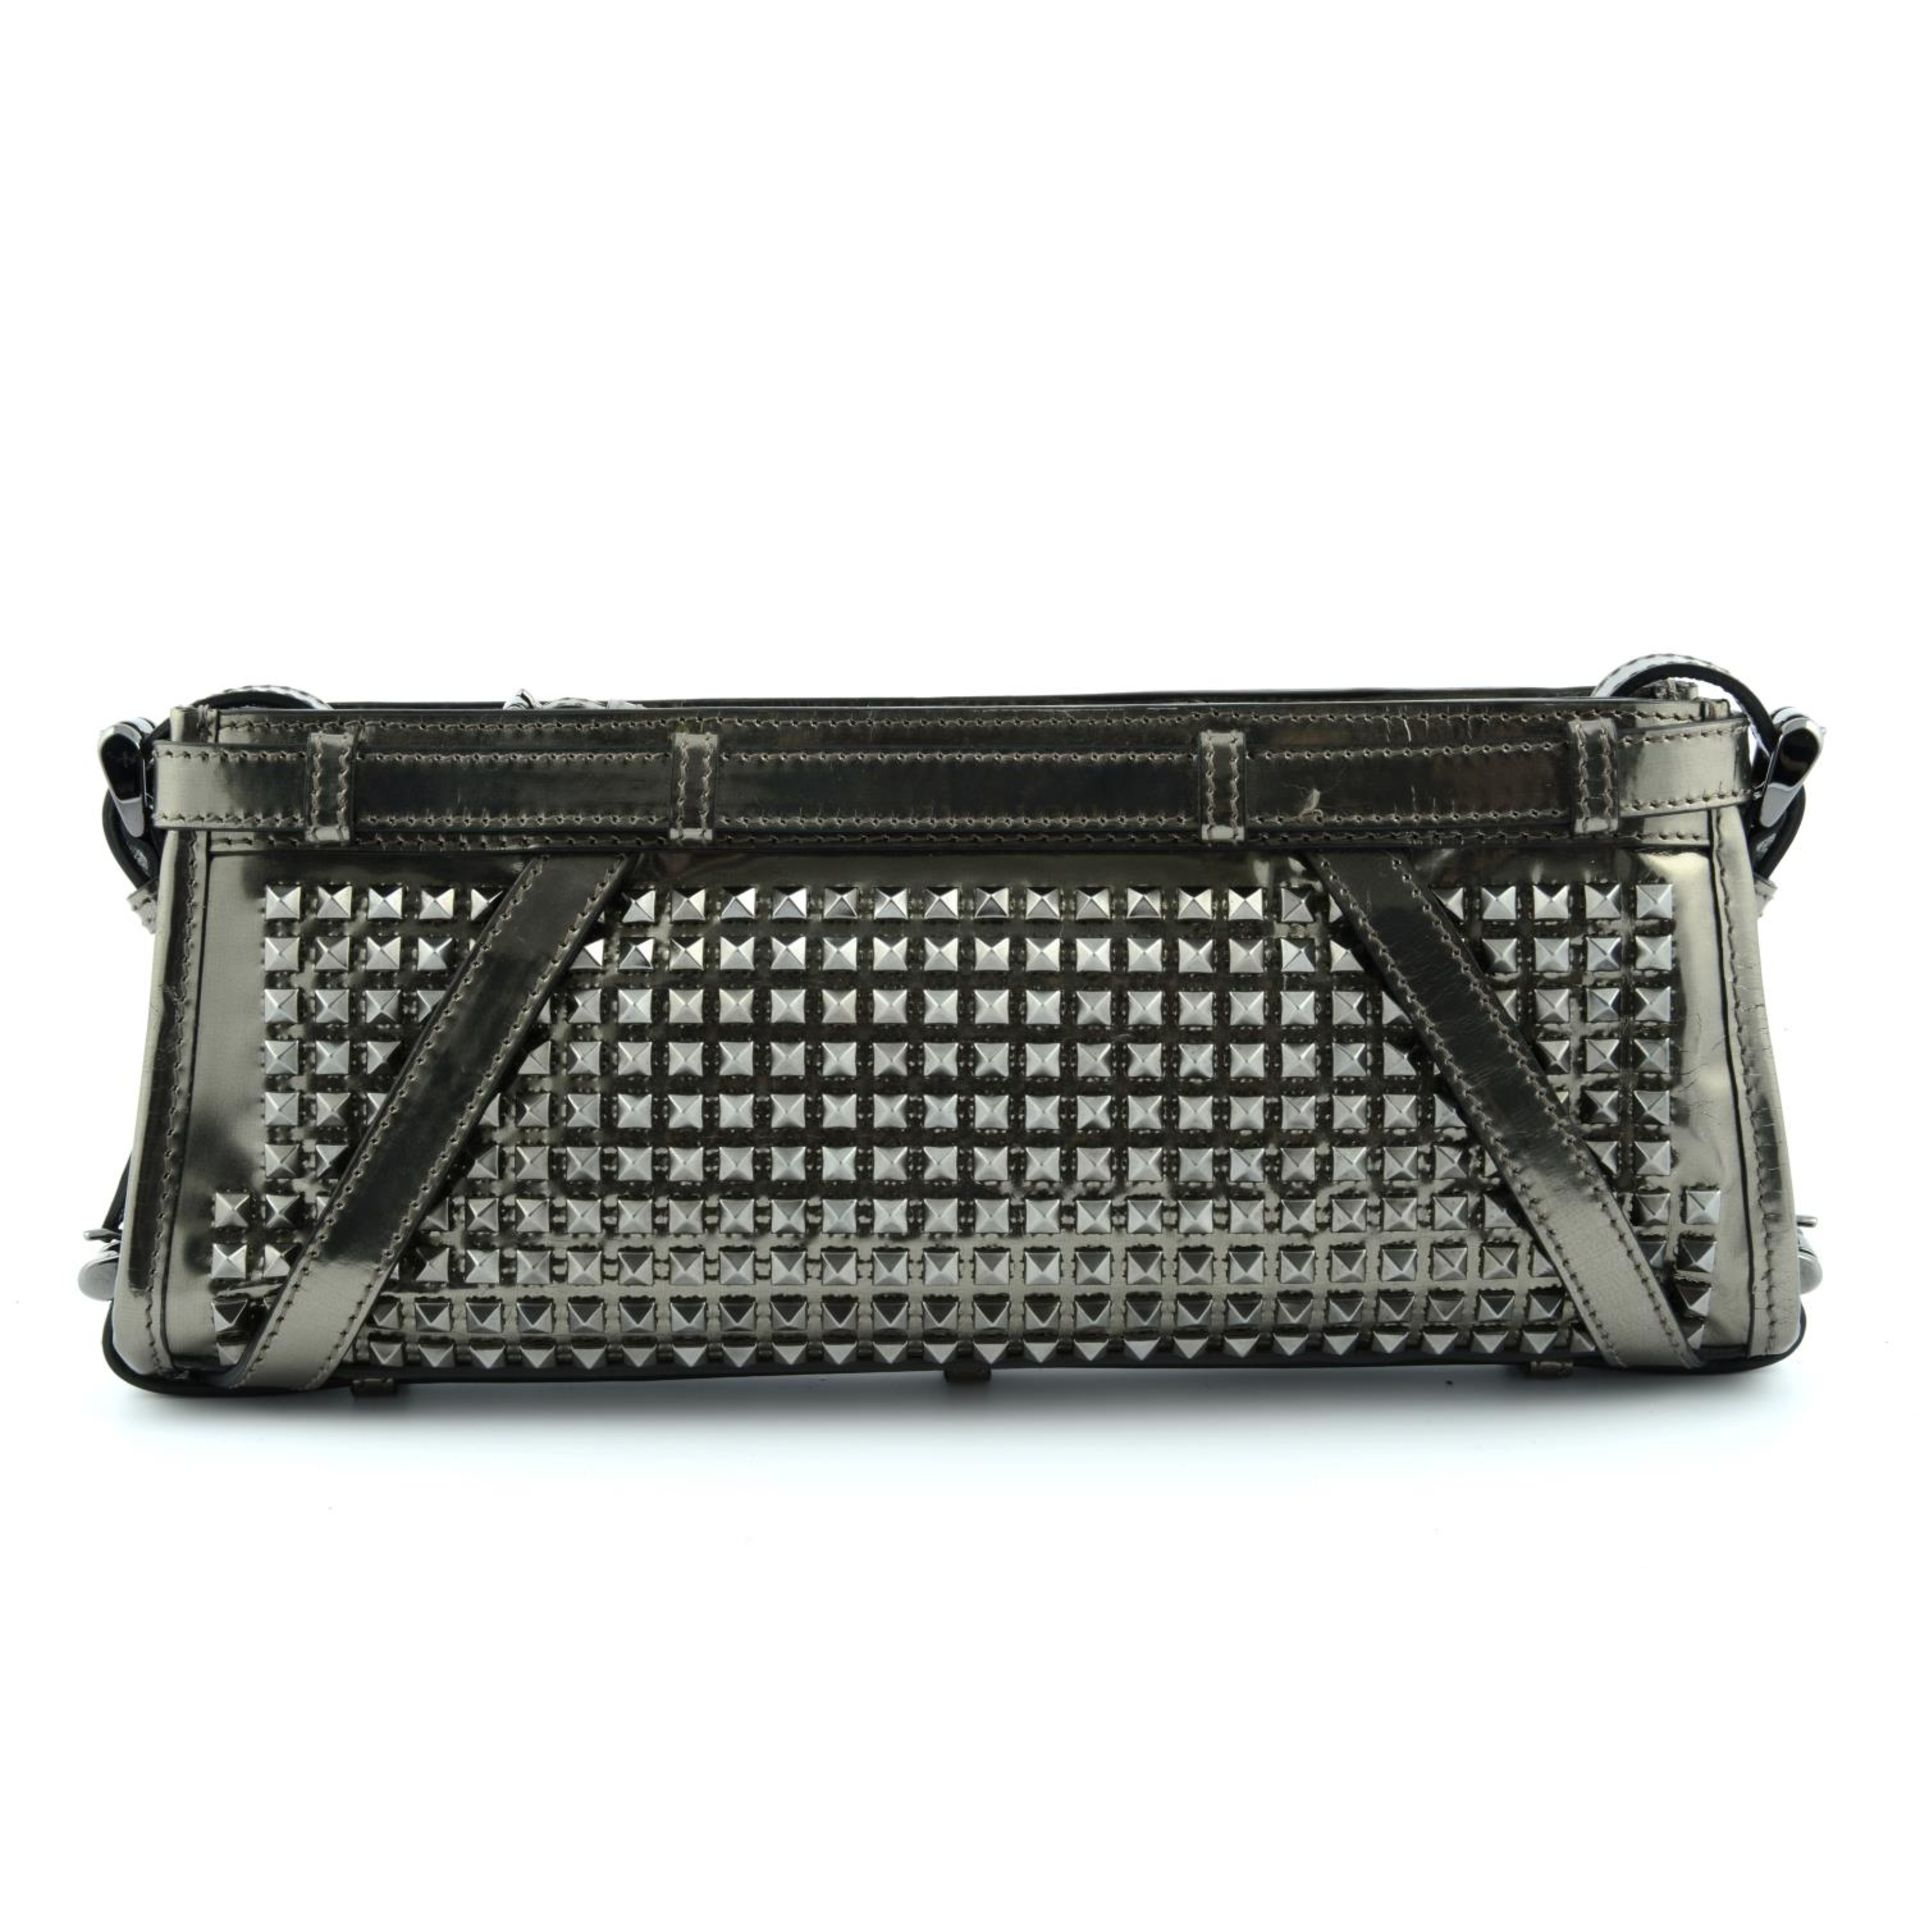 BURBERRY - a Hyde studded clutch. - Image 2 of 5